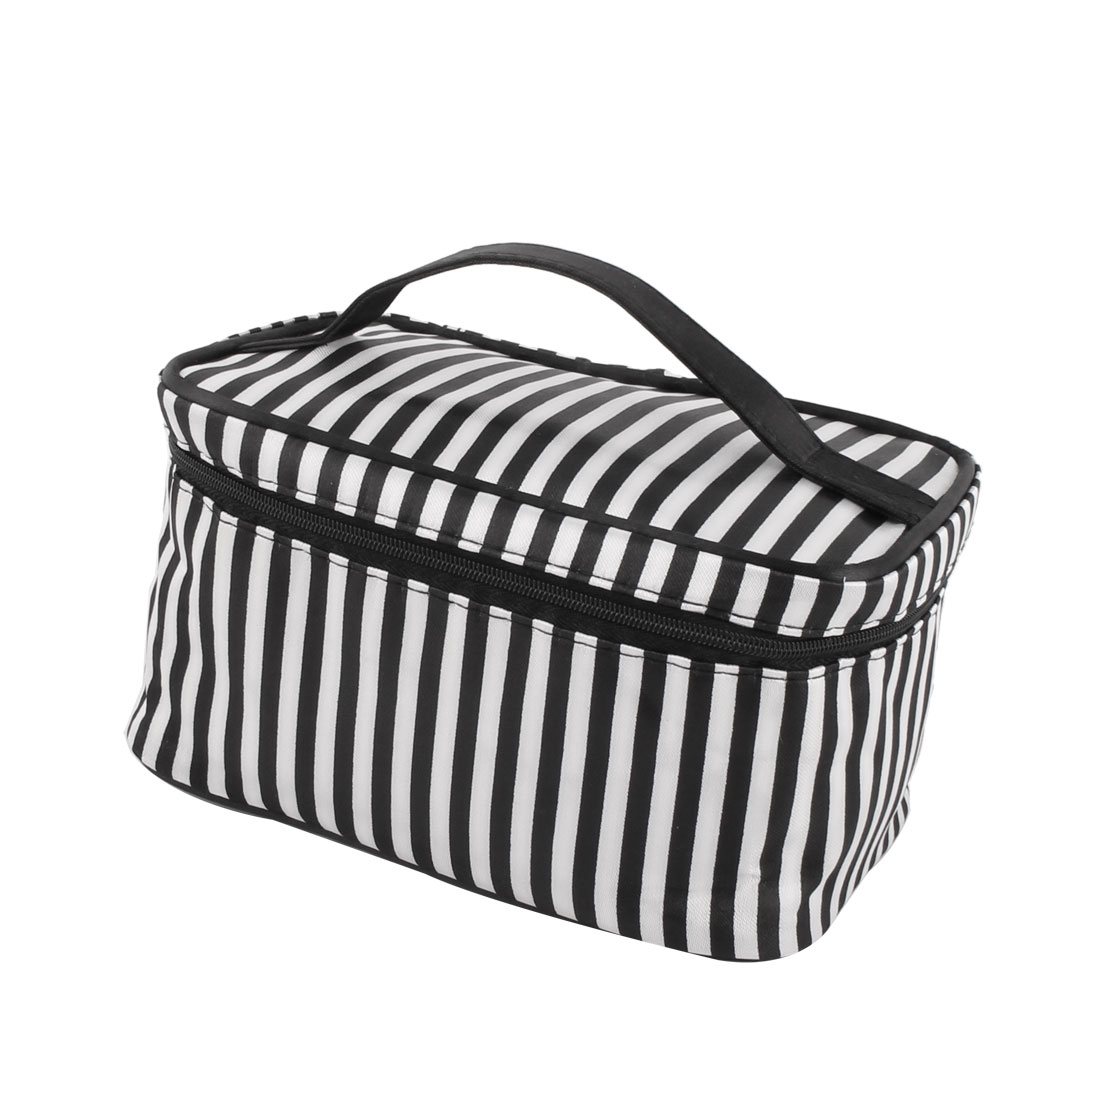 Ladies Outdoor Polyester Stripes Pattern Toiletry Makeup Portable Bag White Black